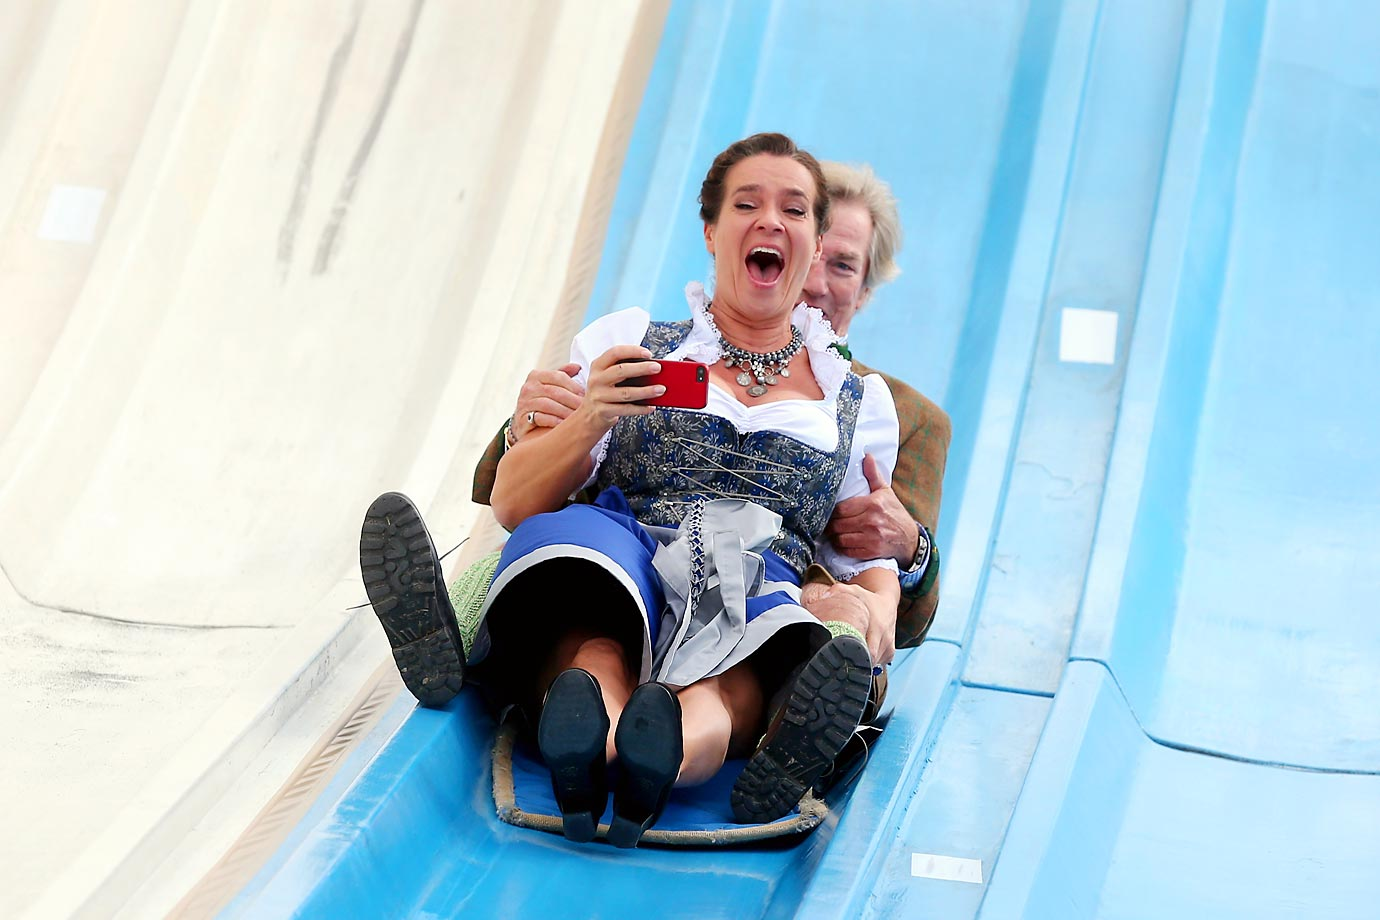 Katarina Witt with Prince Leopold von Bayern on a slide set up for Oktoberfest in Munich, Germany.